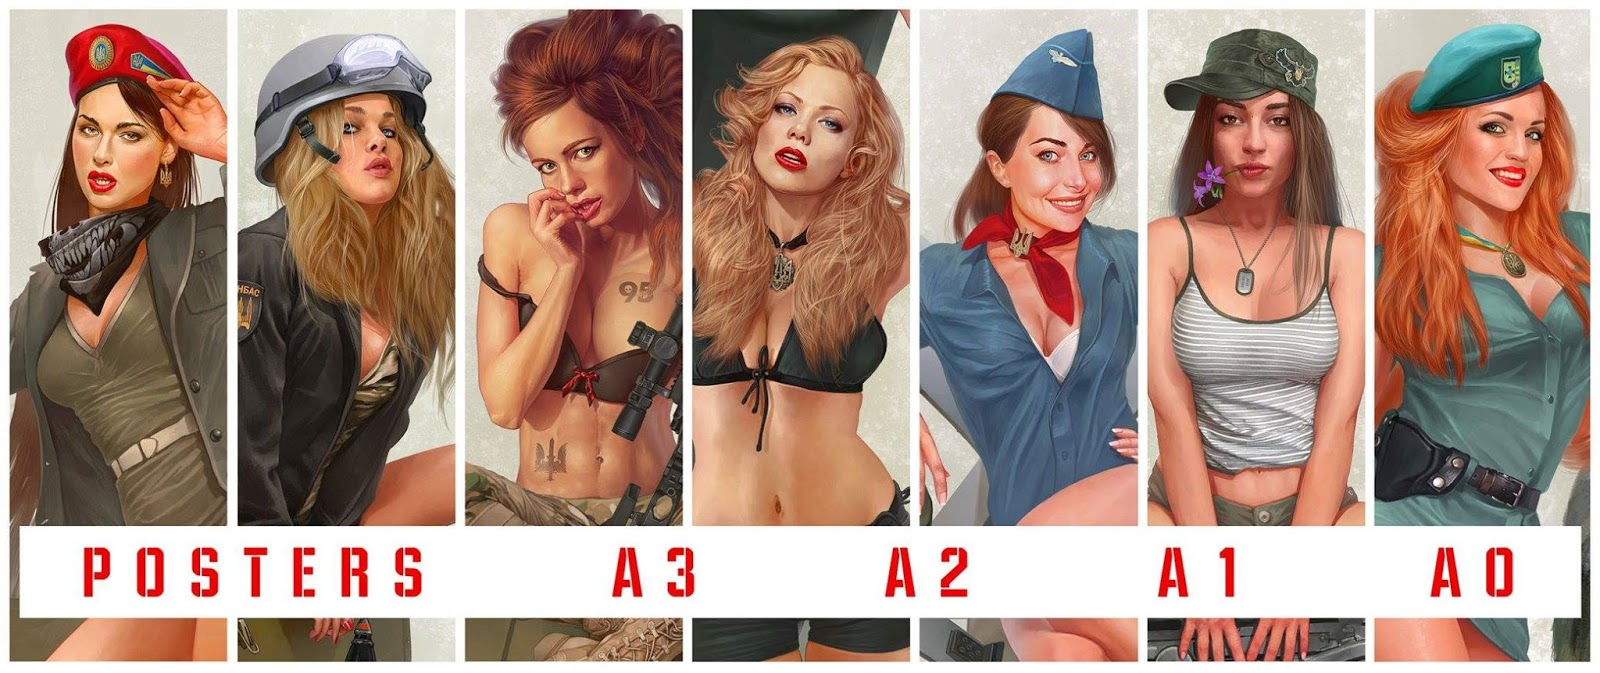 posters pin up